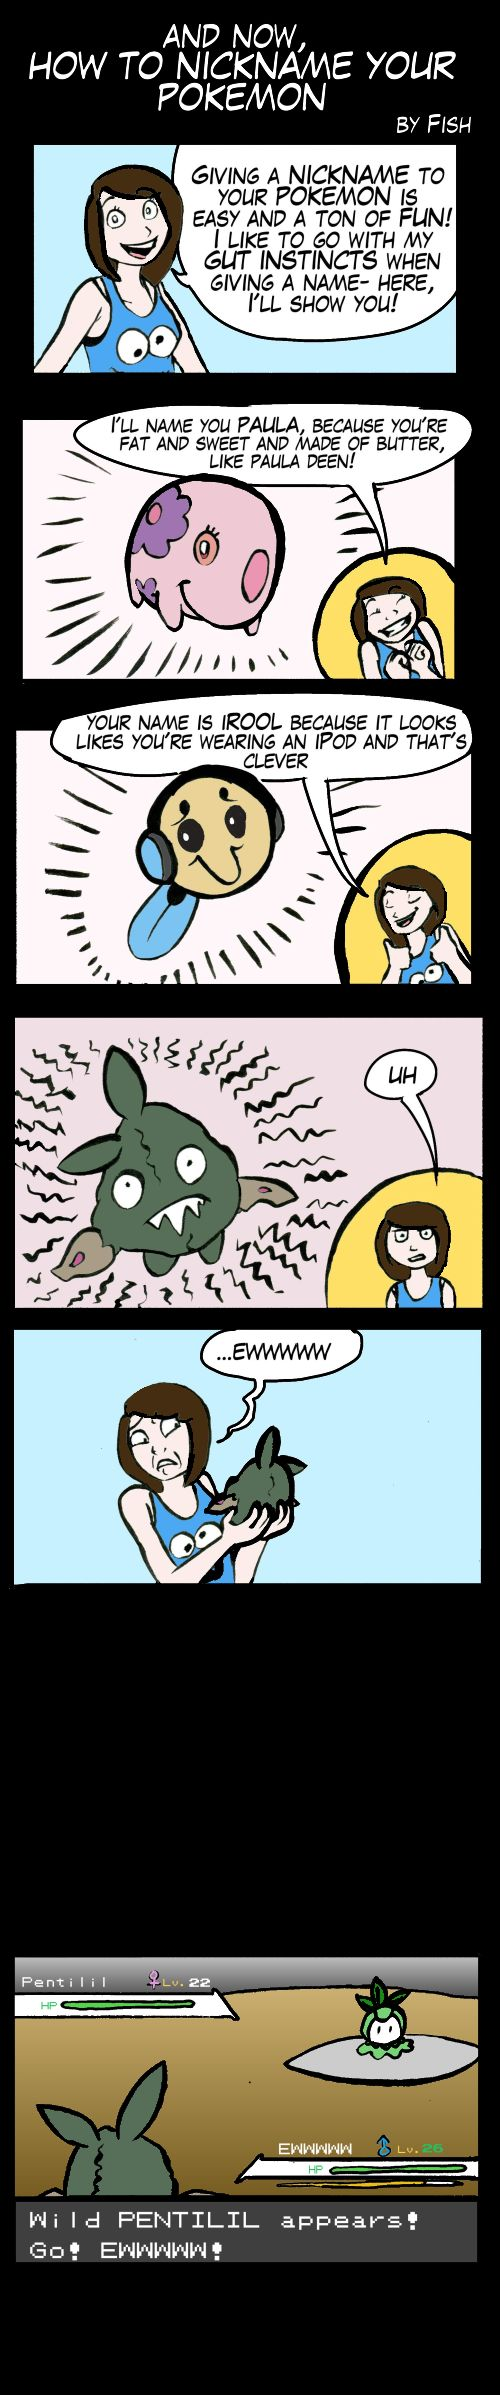 How to nickname your pokemon by fish puddle on deviantart for Funny fishing team names